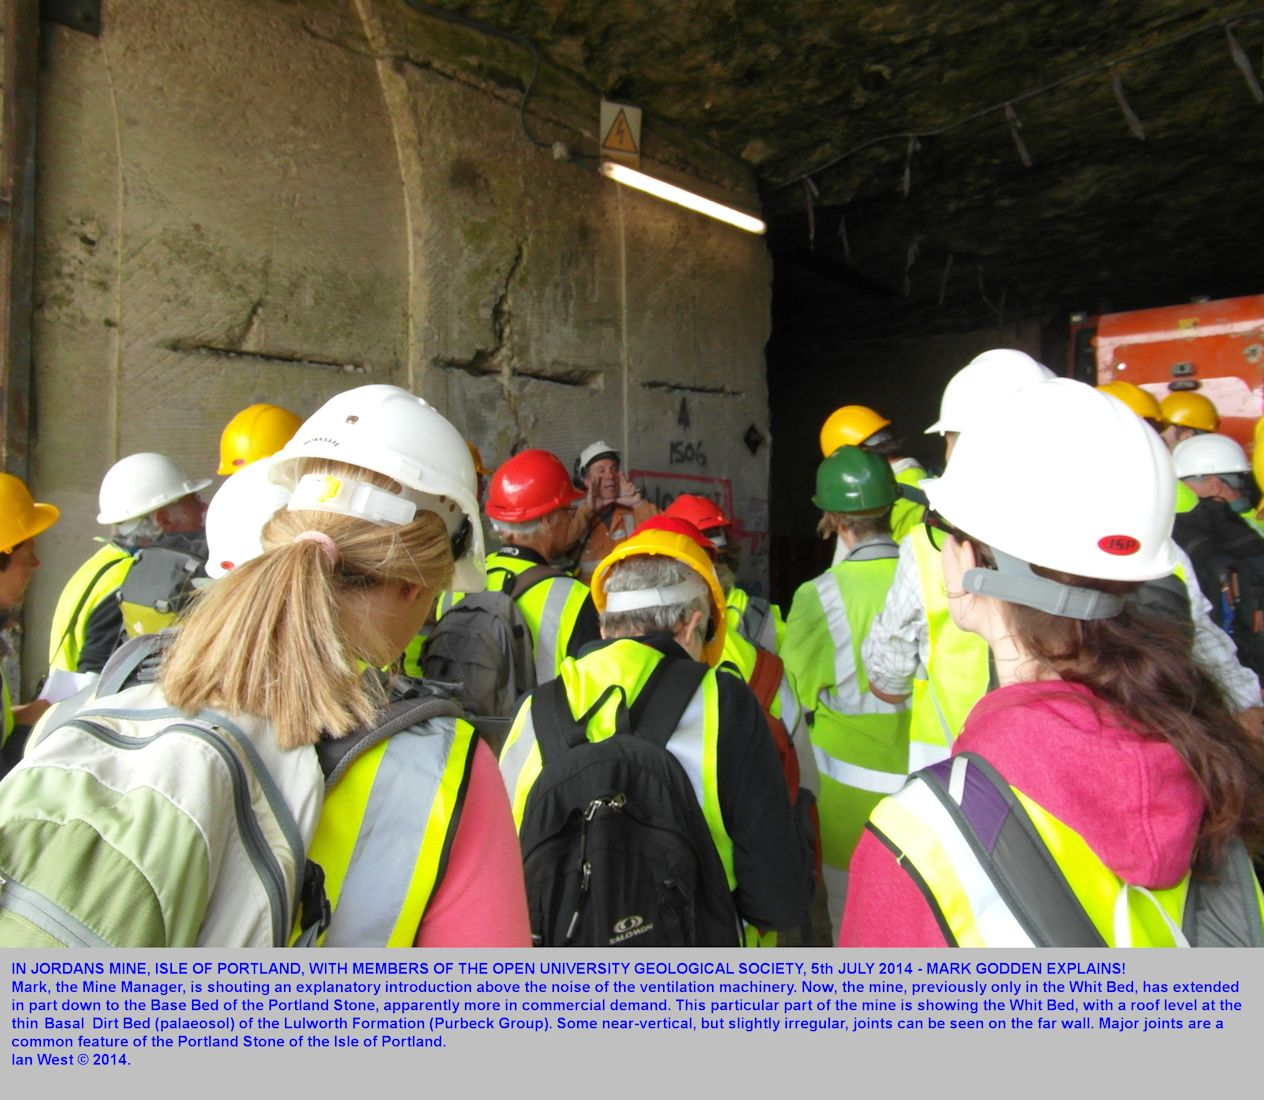 In Jordans Mine, not far from the entrance, the Mine Manager, Mark Godden, shouts an explanation to members of the Open University Geological Society, Isle of Portland, Dorset, 5th July 2014